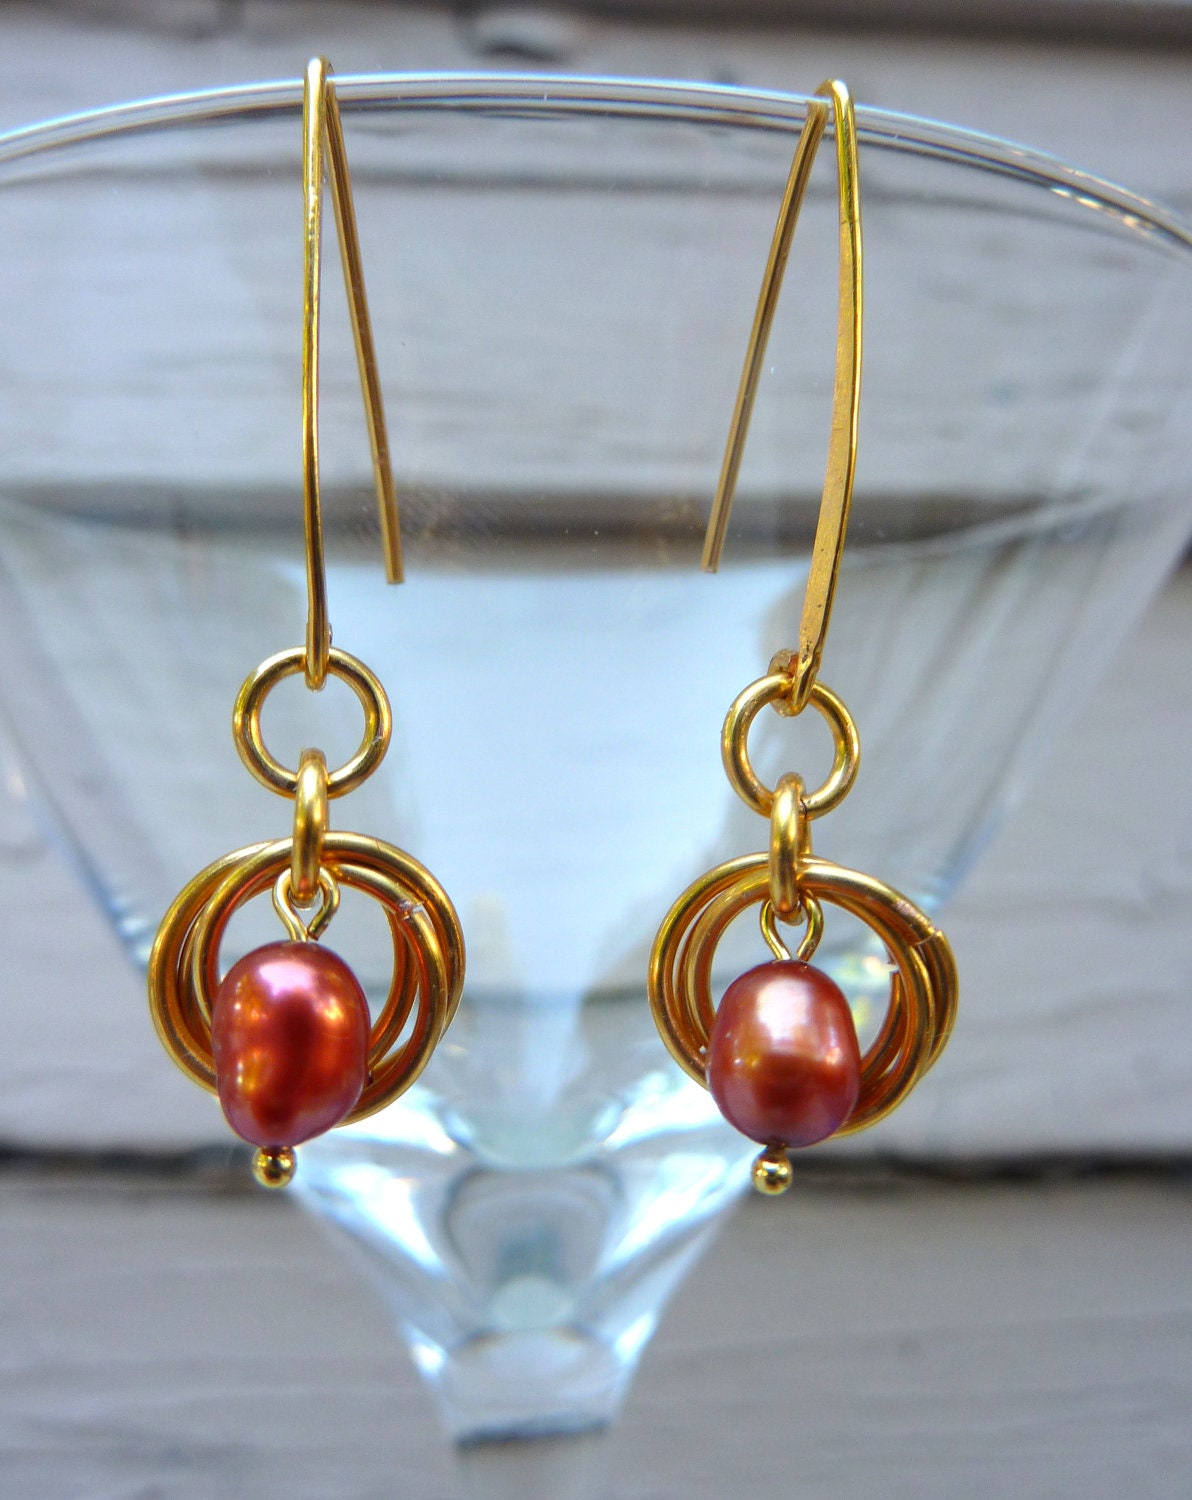 Gold Hammered Dangly Earrings with Orange Magenta Iridescent Pearls